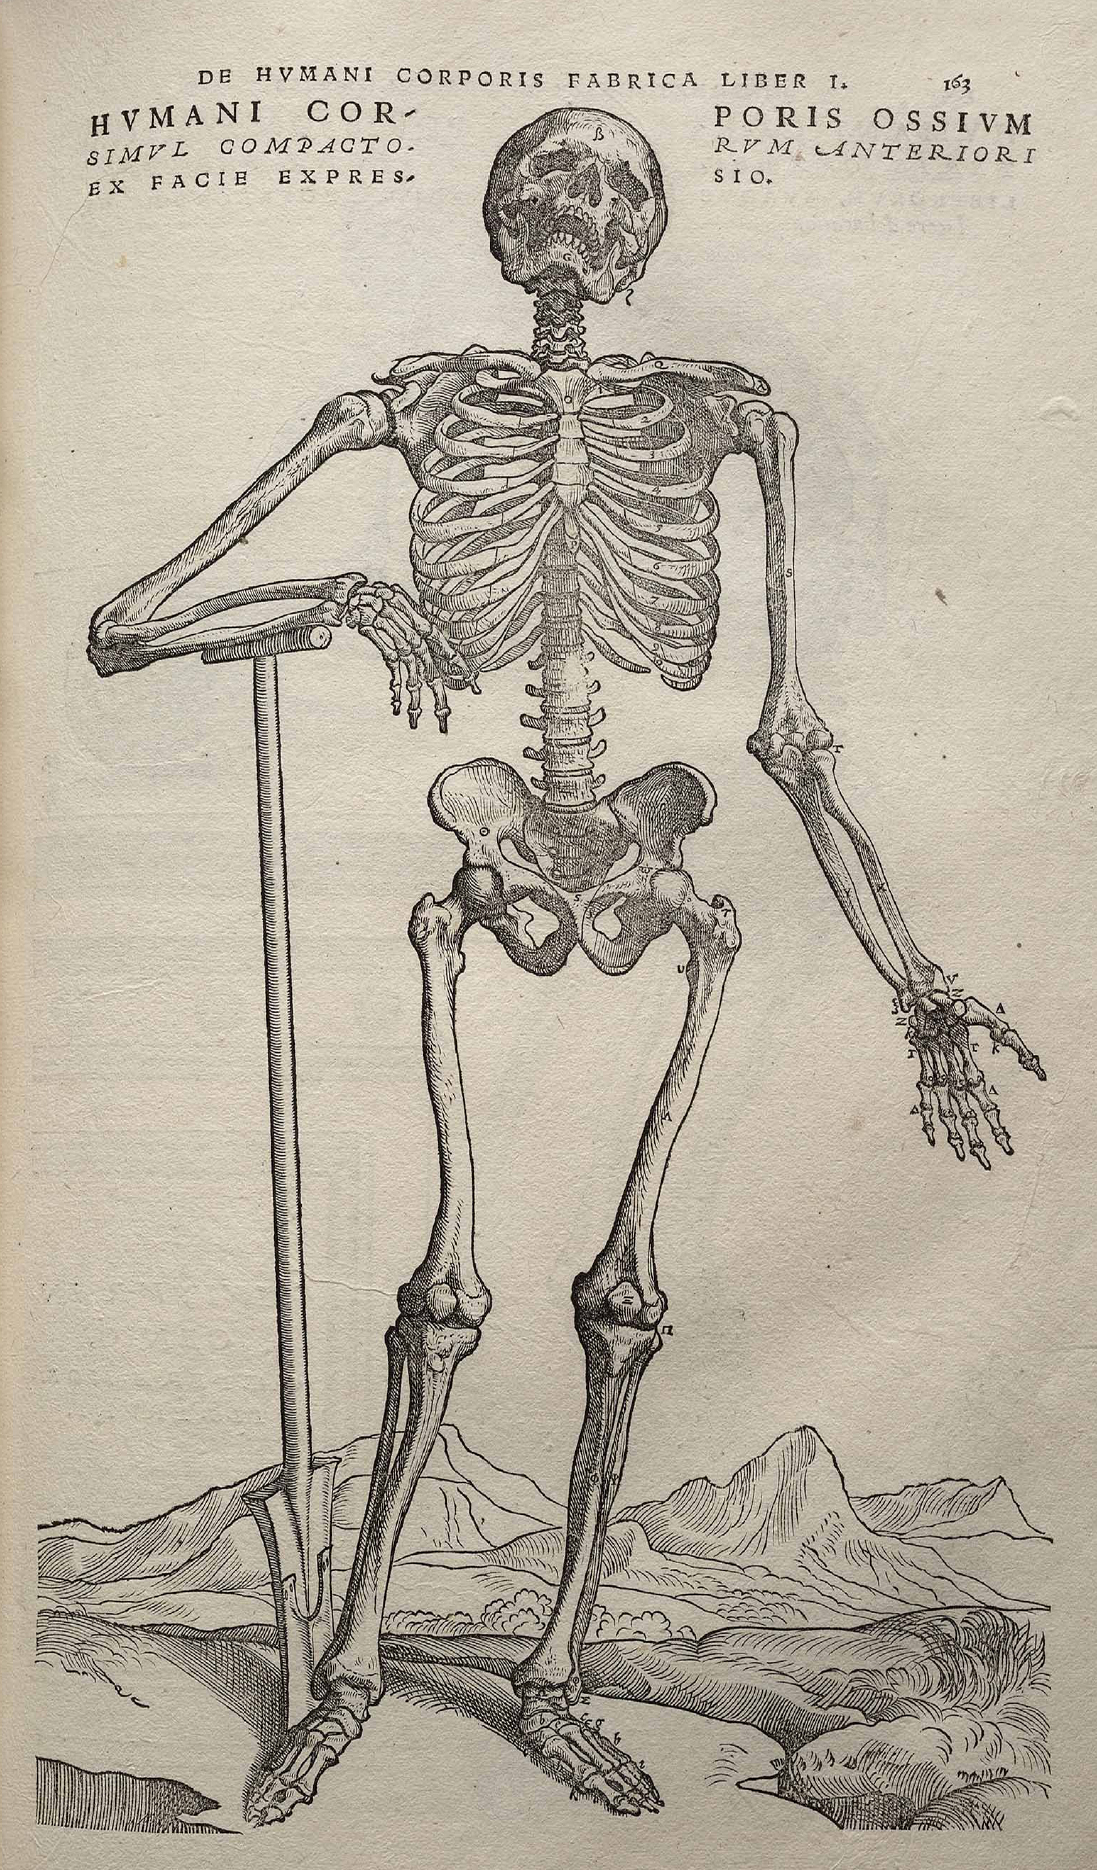 One of the most important scientific books of the Renaissance was On the Fabric of Human Anatomy. Published in 1543, it was a seven-volume work by the physician Andreas Visalius and illustrated by one of the students of the great Renaissance painter Titian. Although the primary purpose of On the Fabric of Human Anatomy was to provide an accurate picture of human bones, muscles, and organs, it is filled with anatomical drawings set in odd places. This skeleton appears to be going on a hike in the Alps. (Image via Wikipedia)